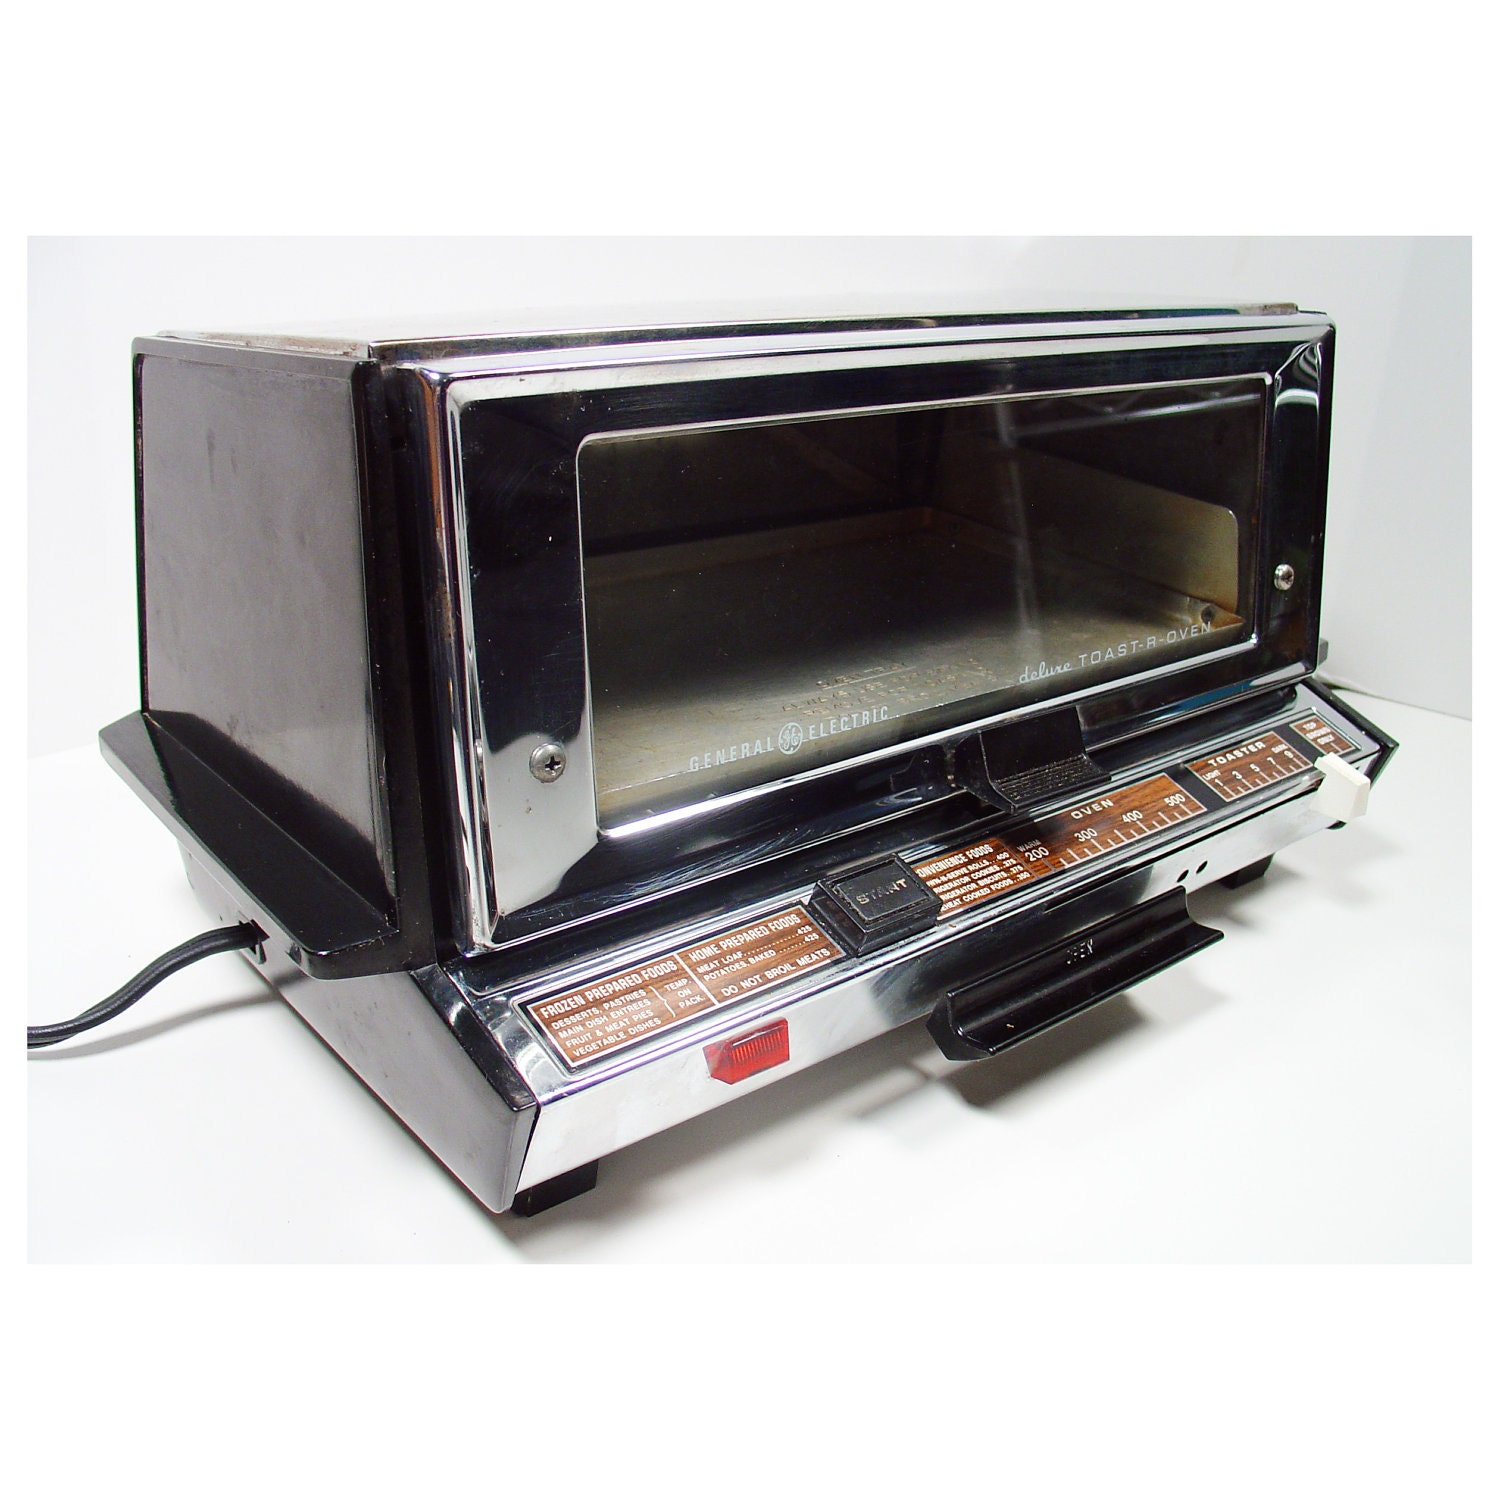 Old Ge Toaster Ovens ~ Toaster oven mid century modern general electric model